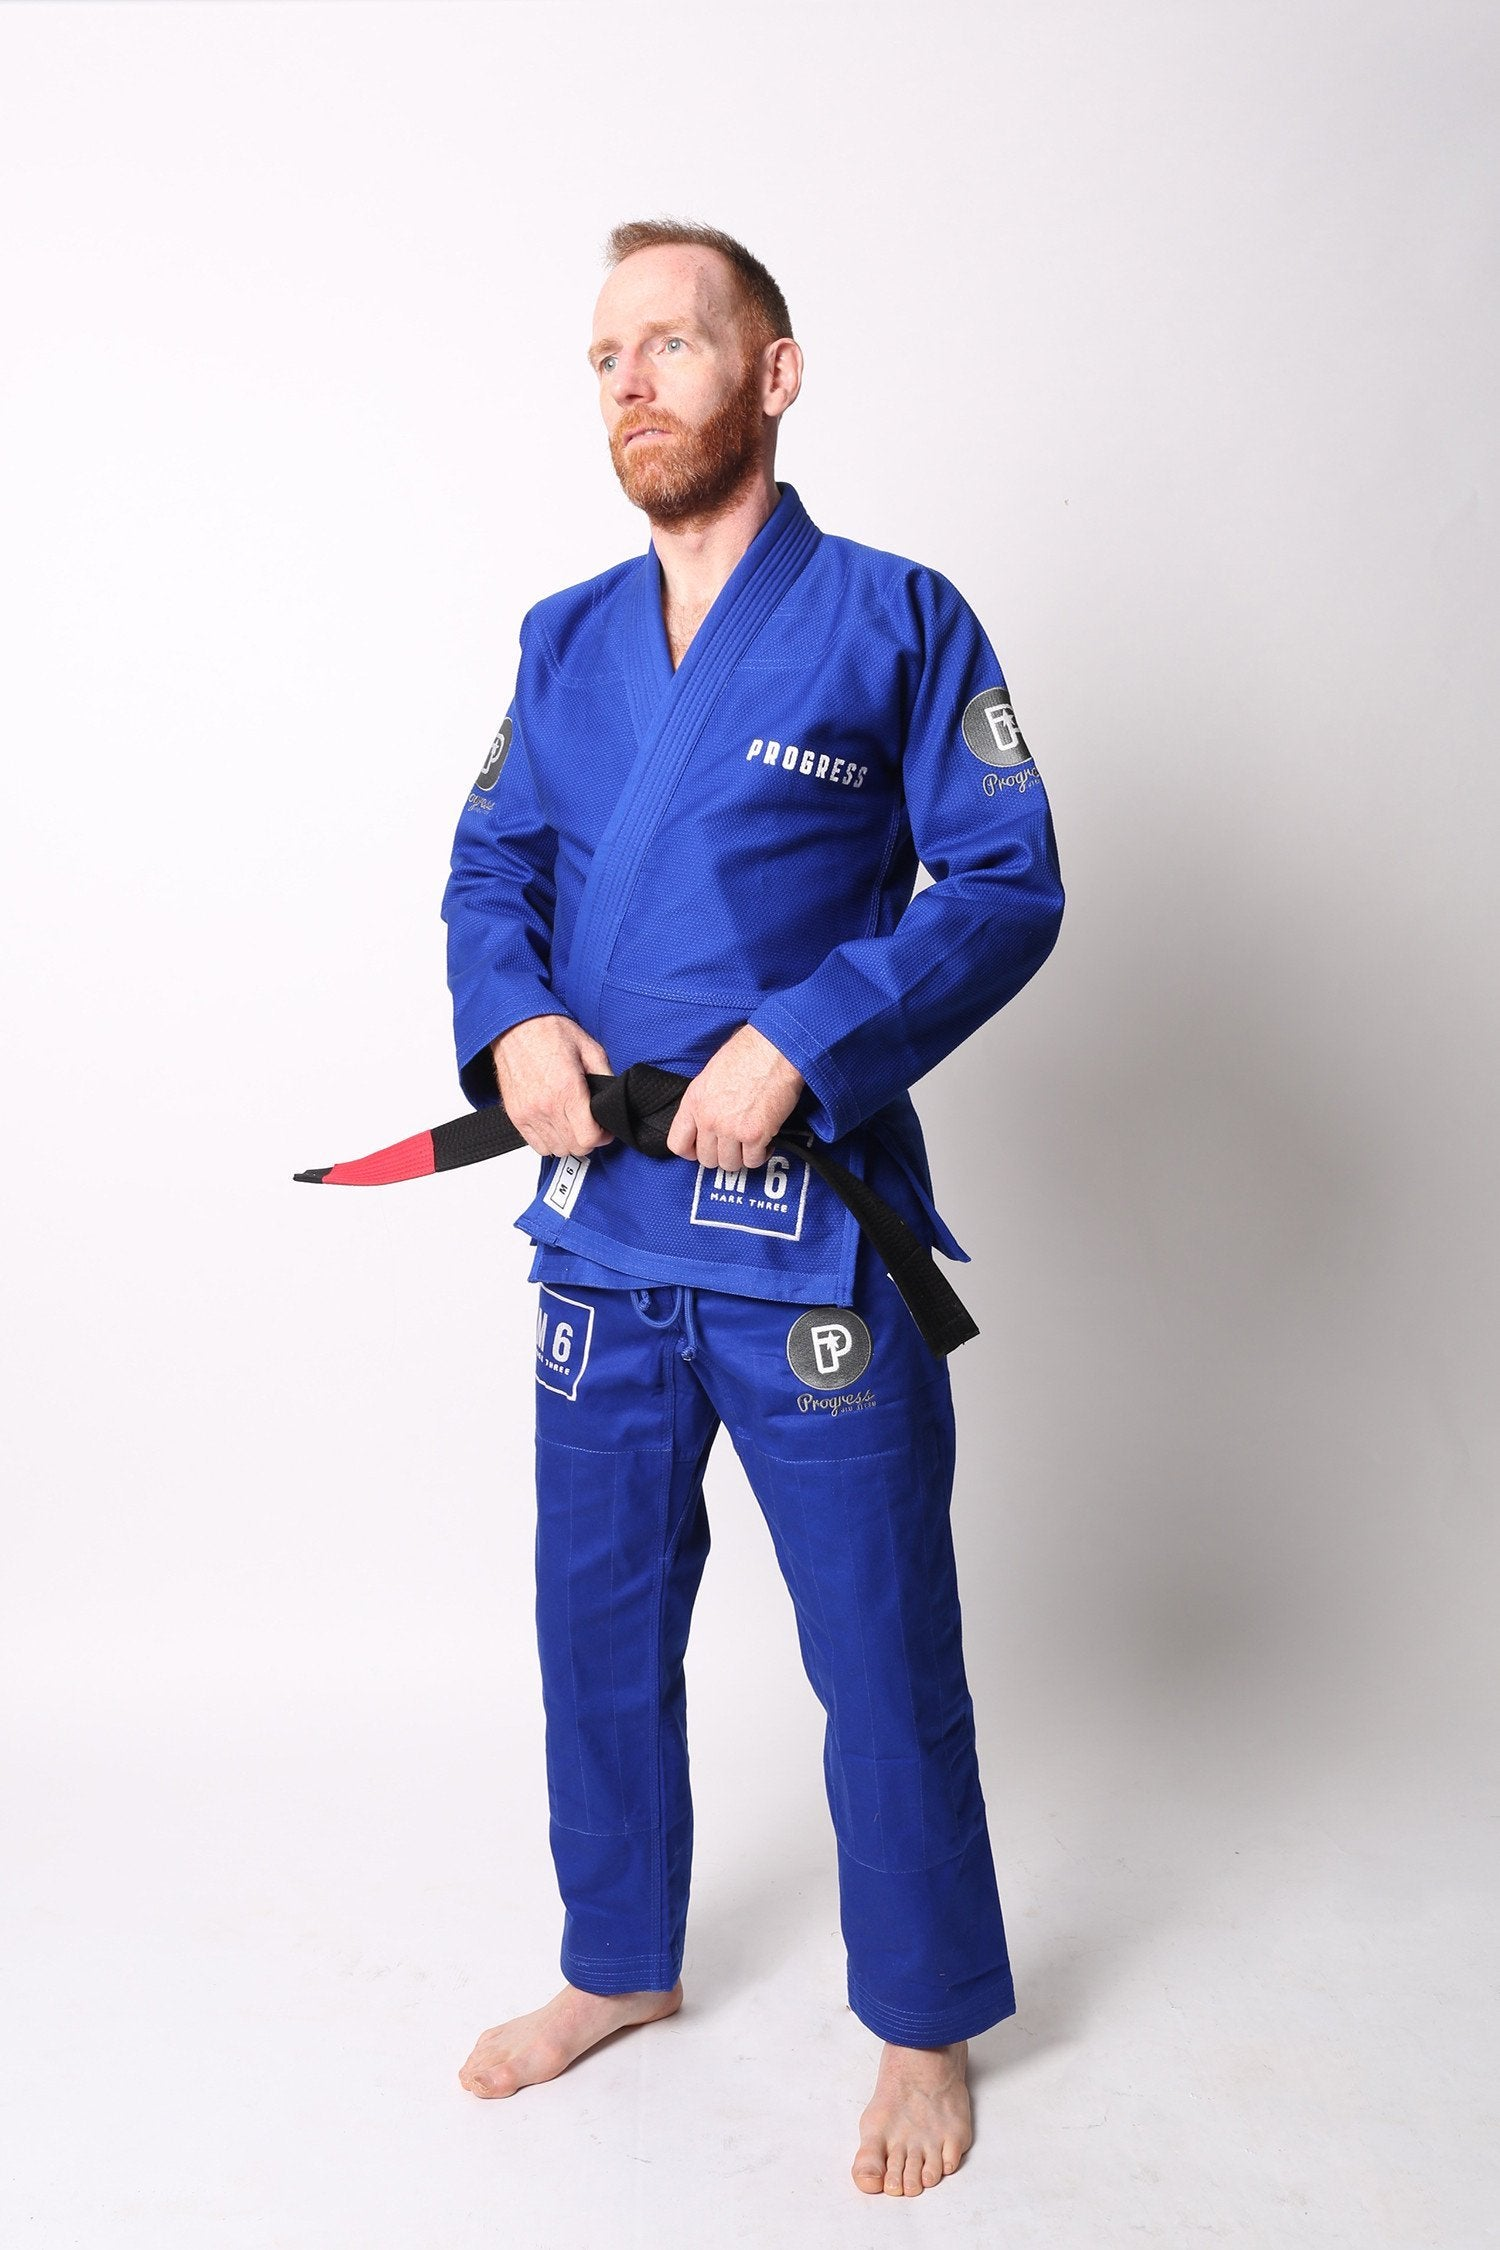 Image of Progress M6 MK3 Blue BJJ Gi